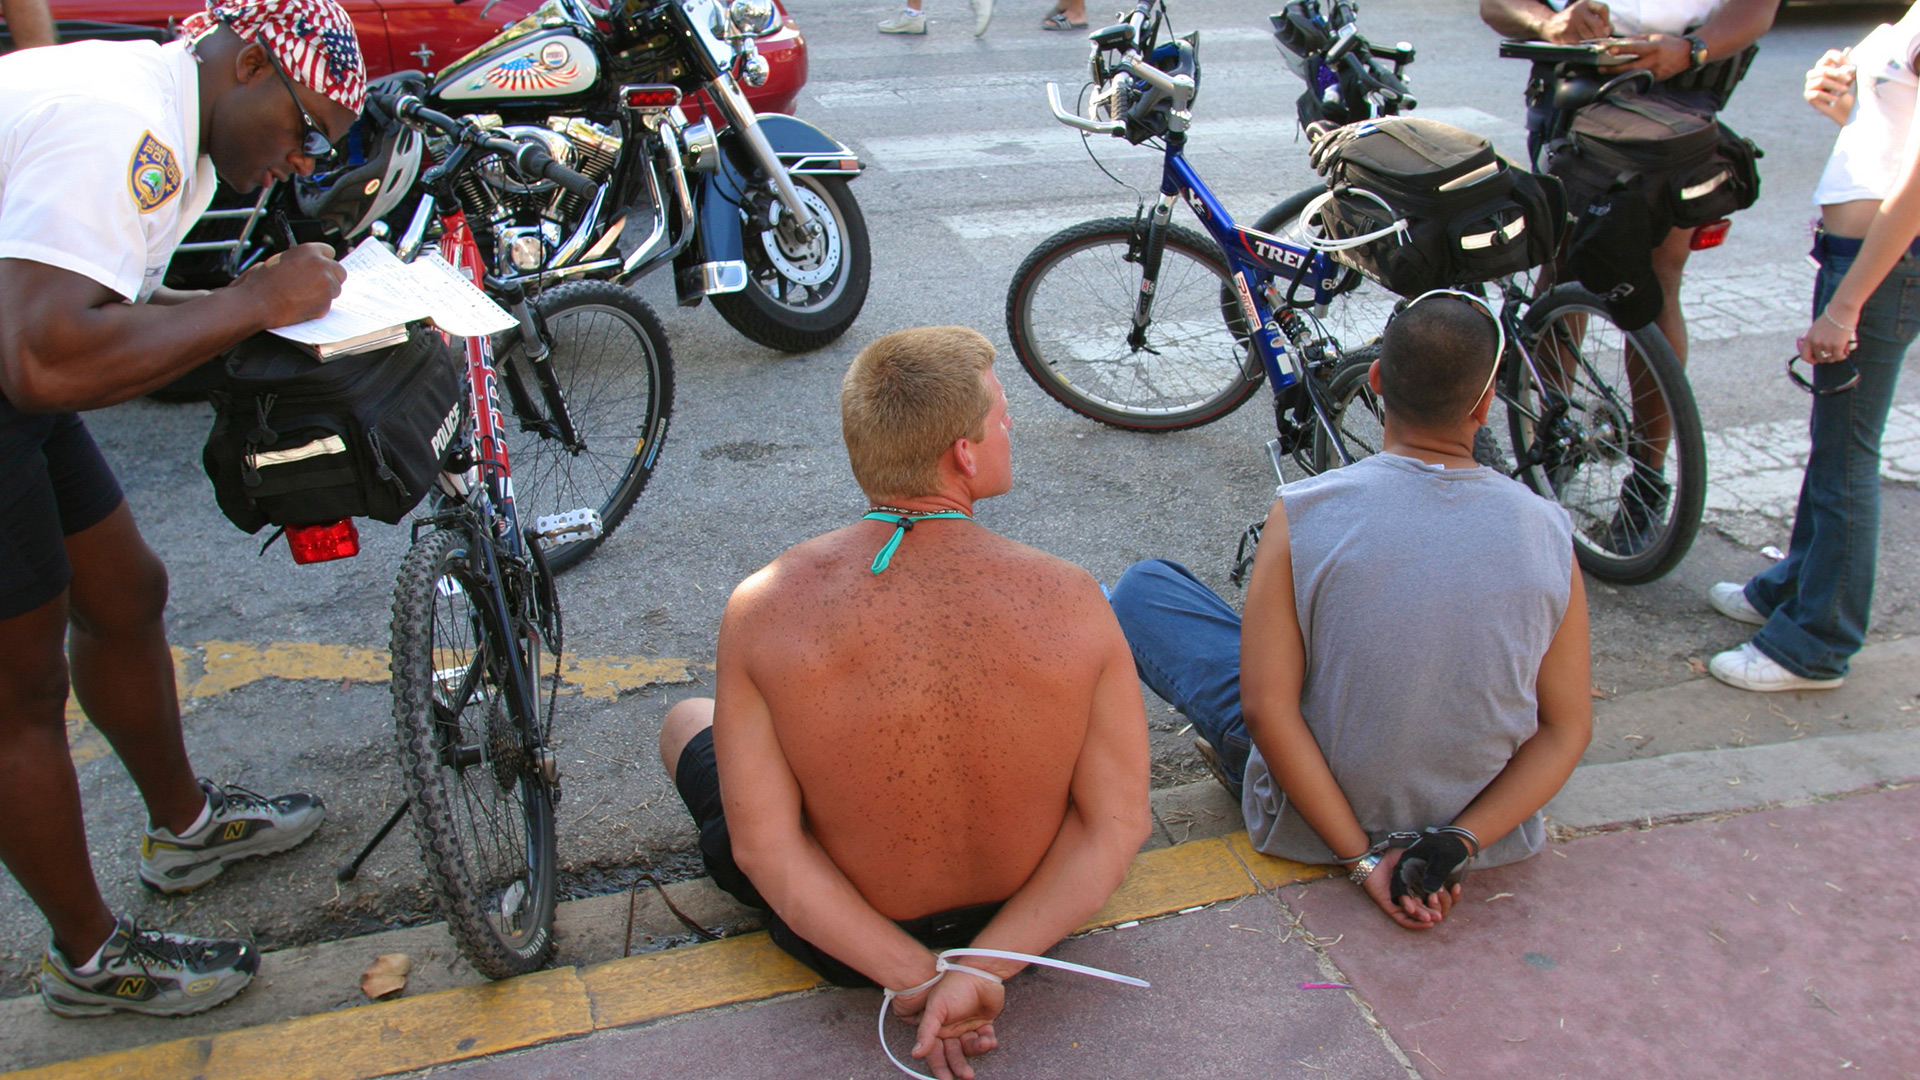 Does Crime Really Go Up in Hot Weather?